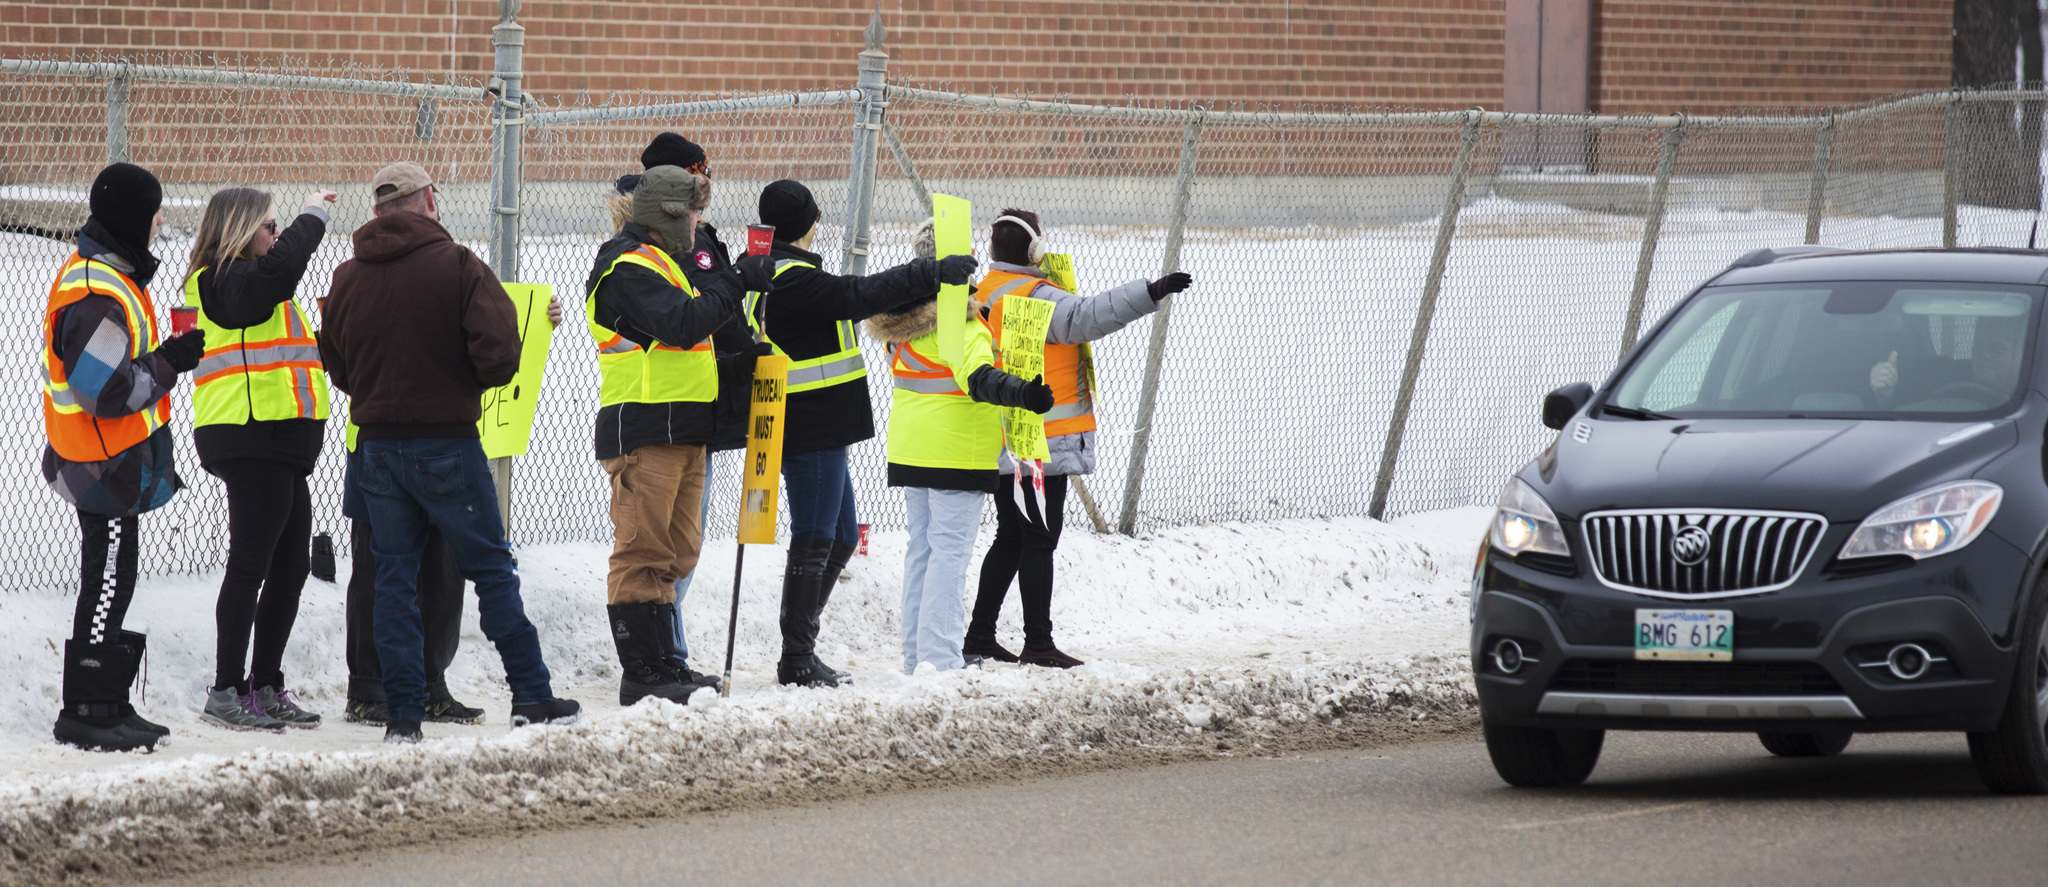 Chelsea Kemp / The Brandon Sun</p><p>Yellow Vest protesters hold rally signs as they wait for a protest trucker convoy from Virden Saturday.</p></p>